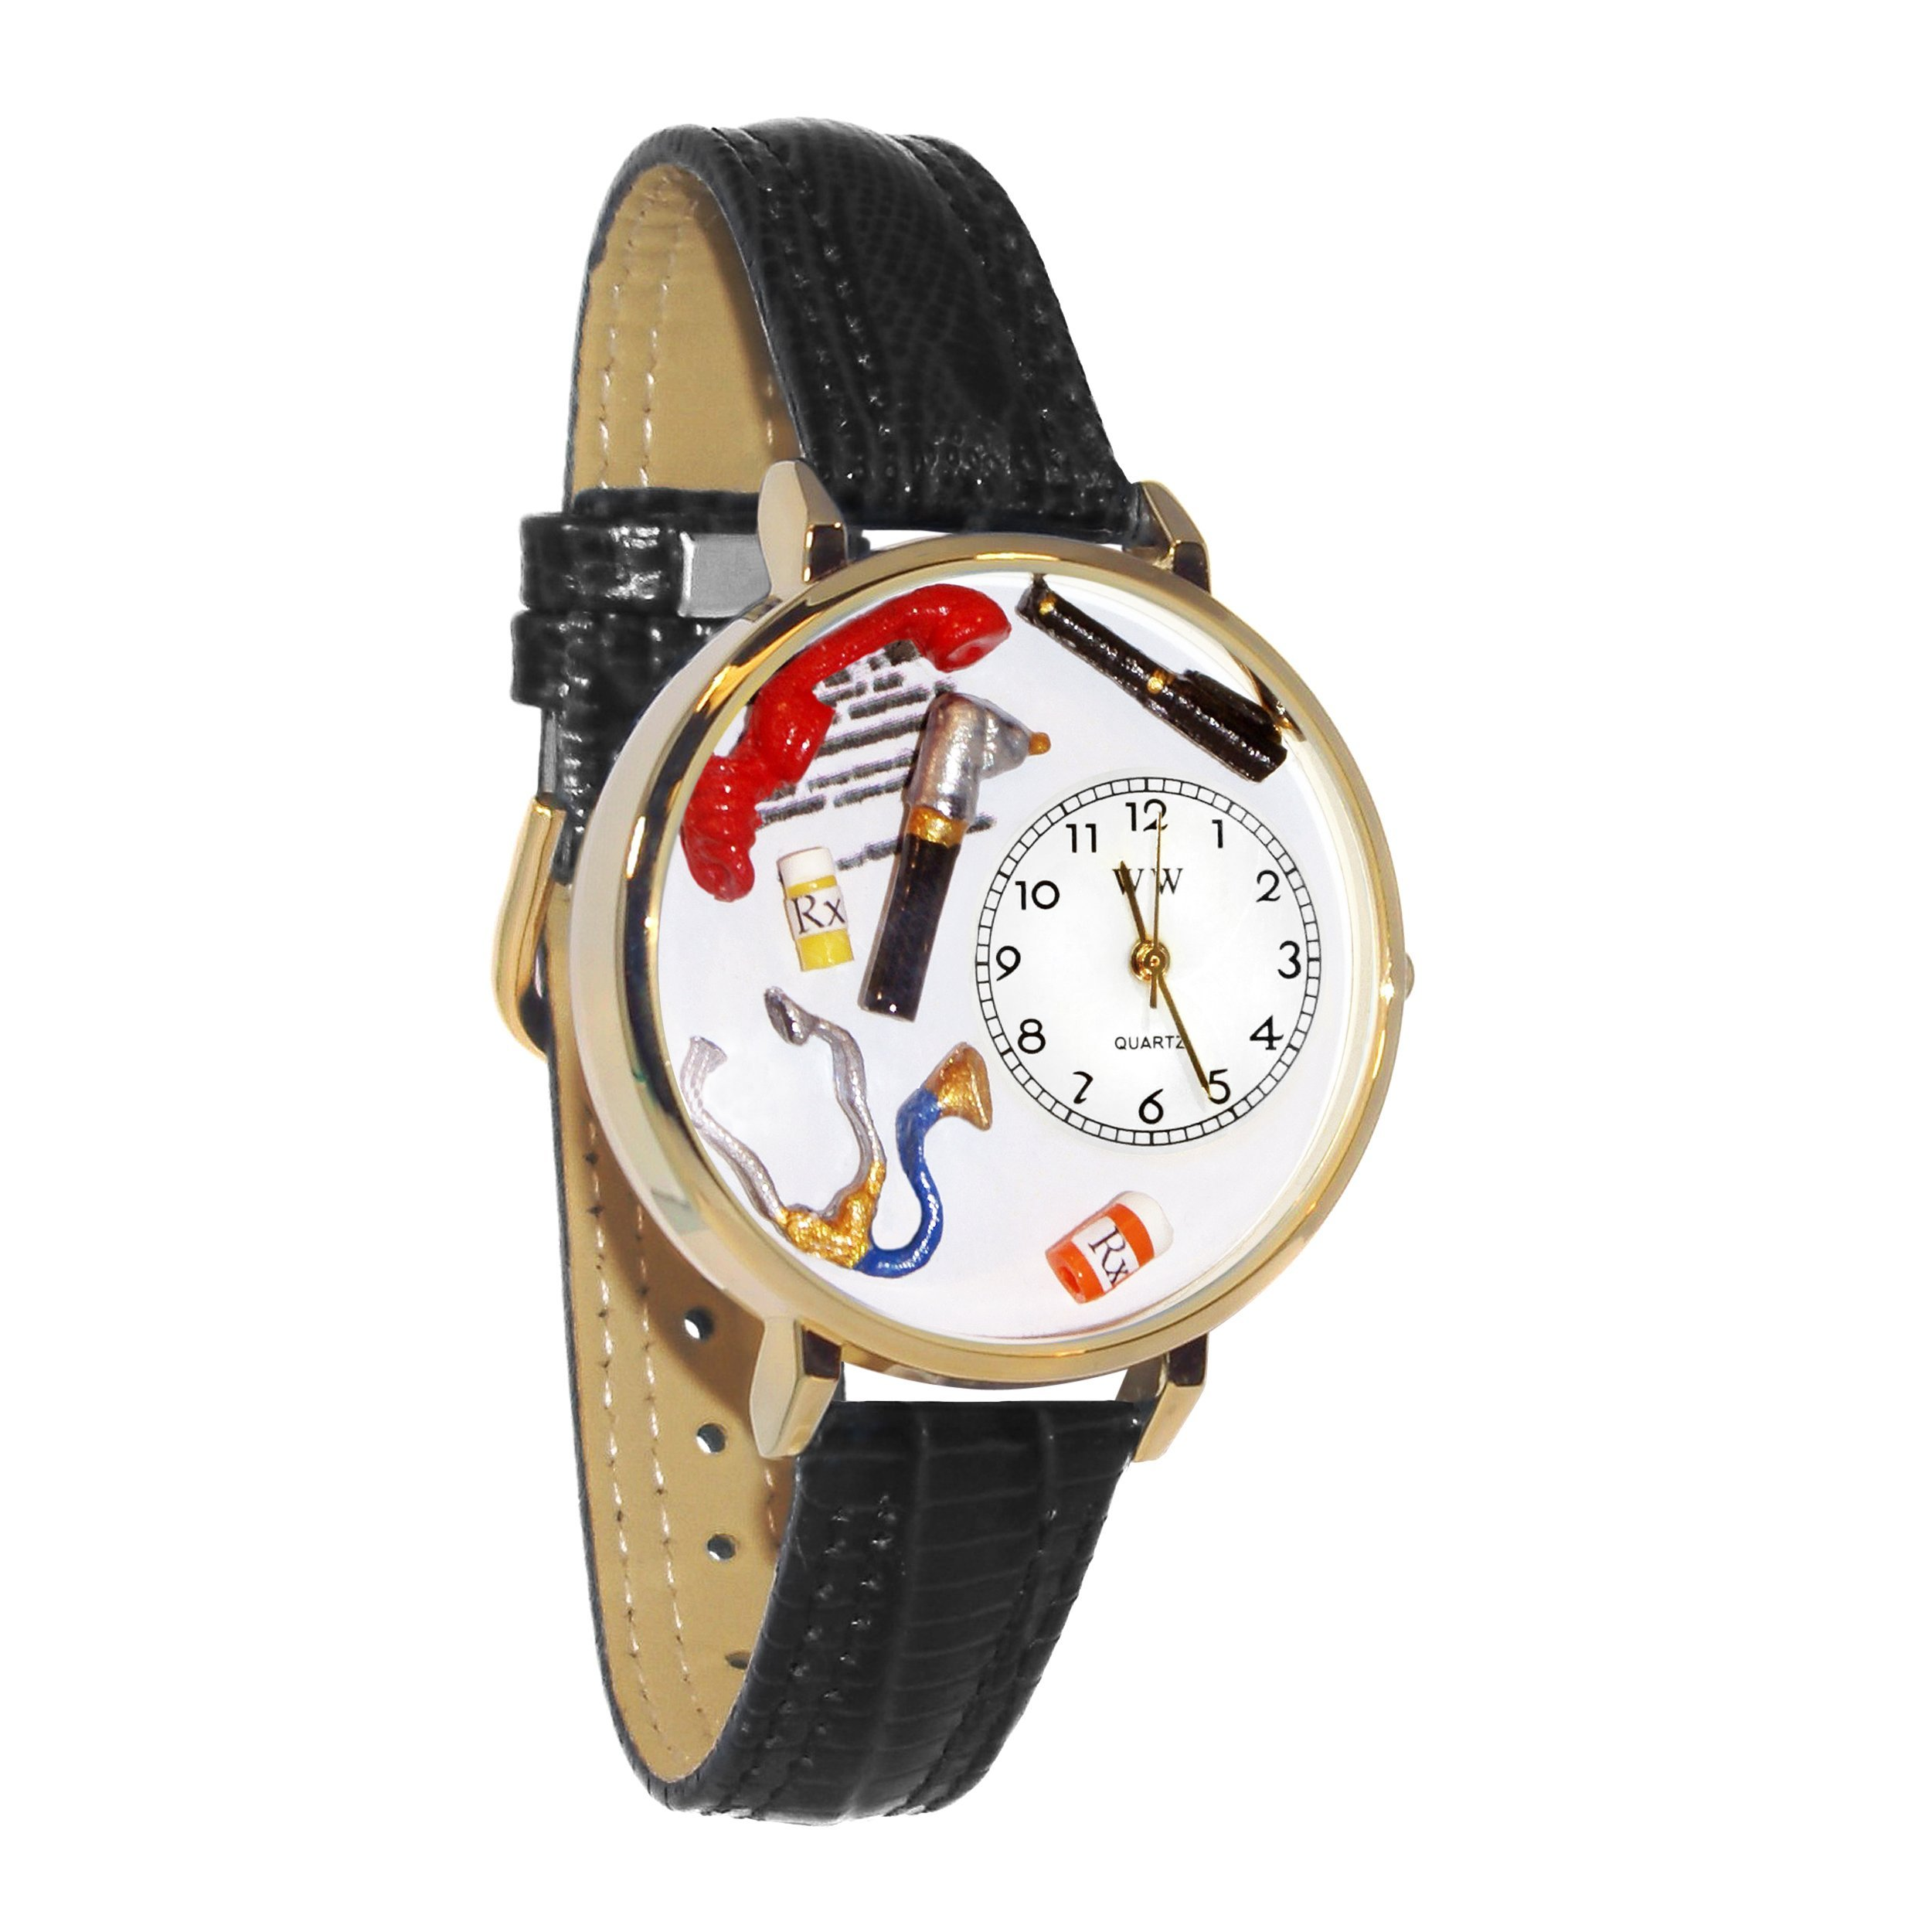 Doctor Black Padded Leather And Goldtone Watch #WG-G0620018